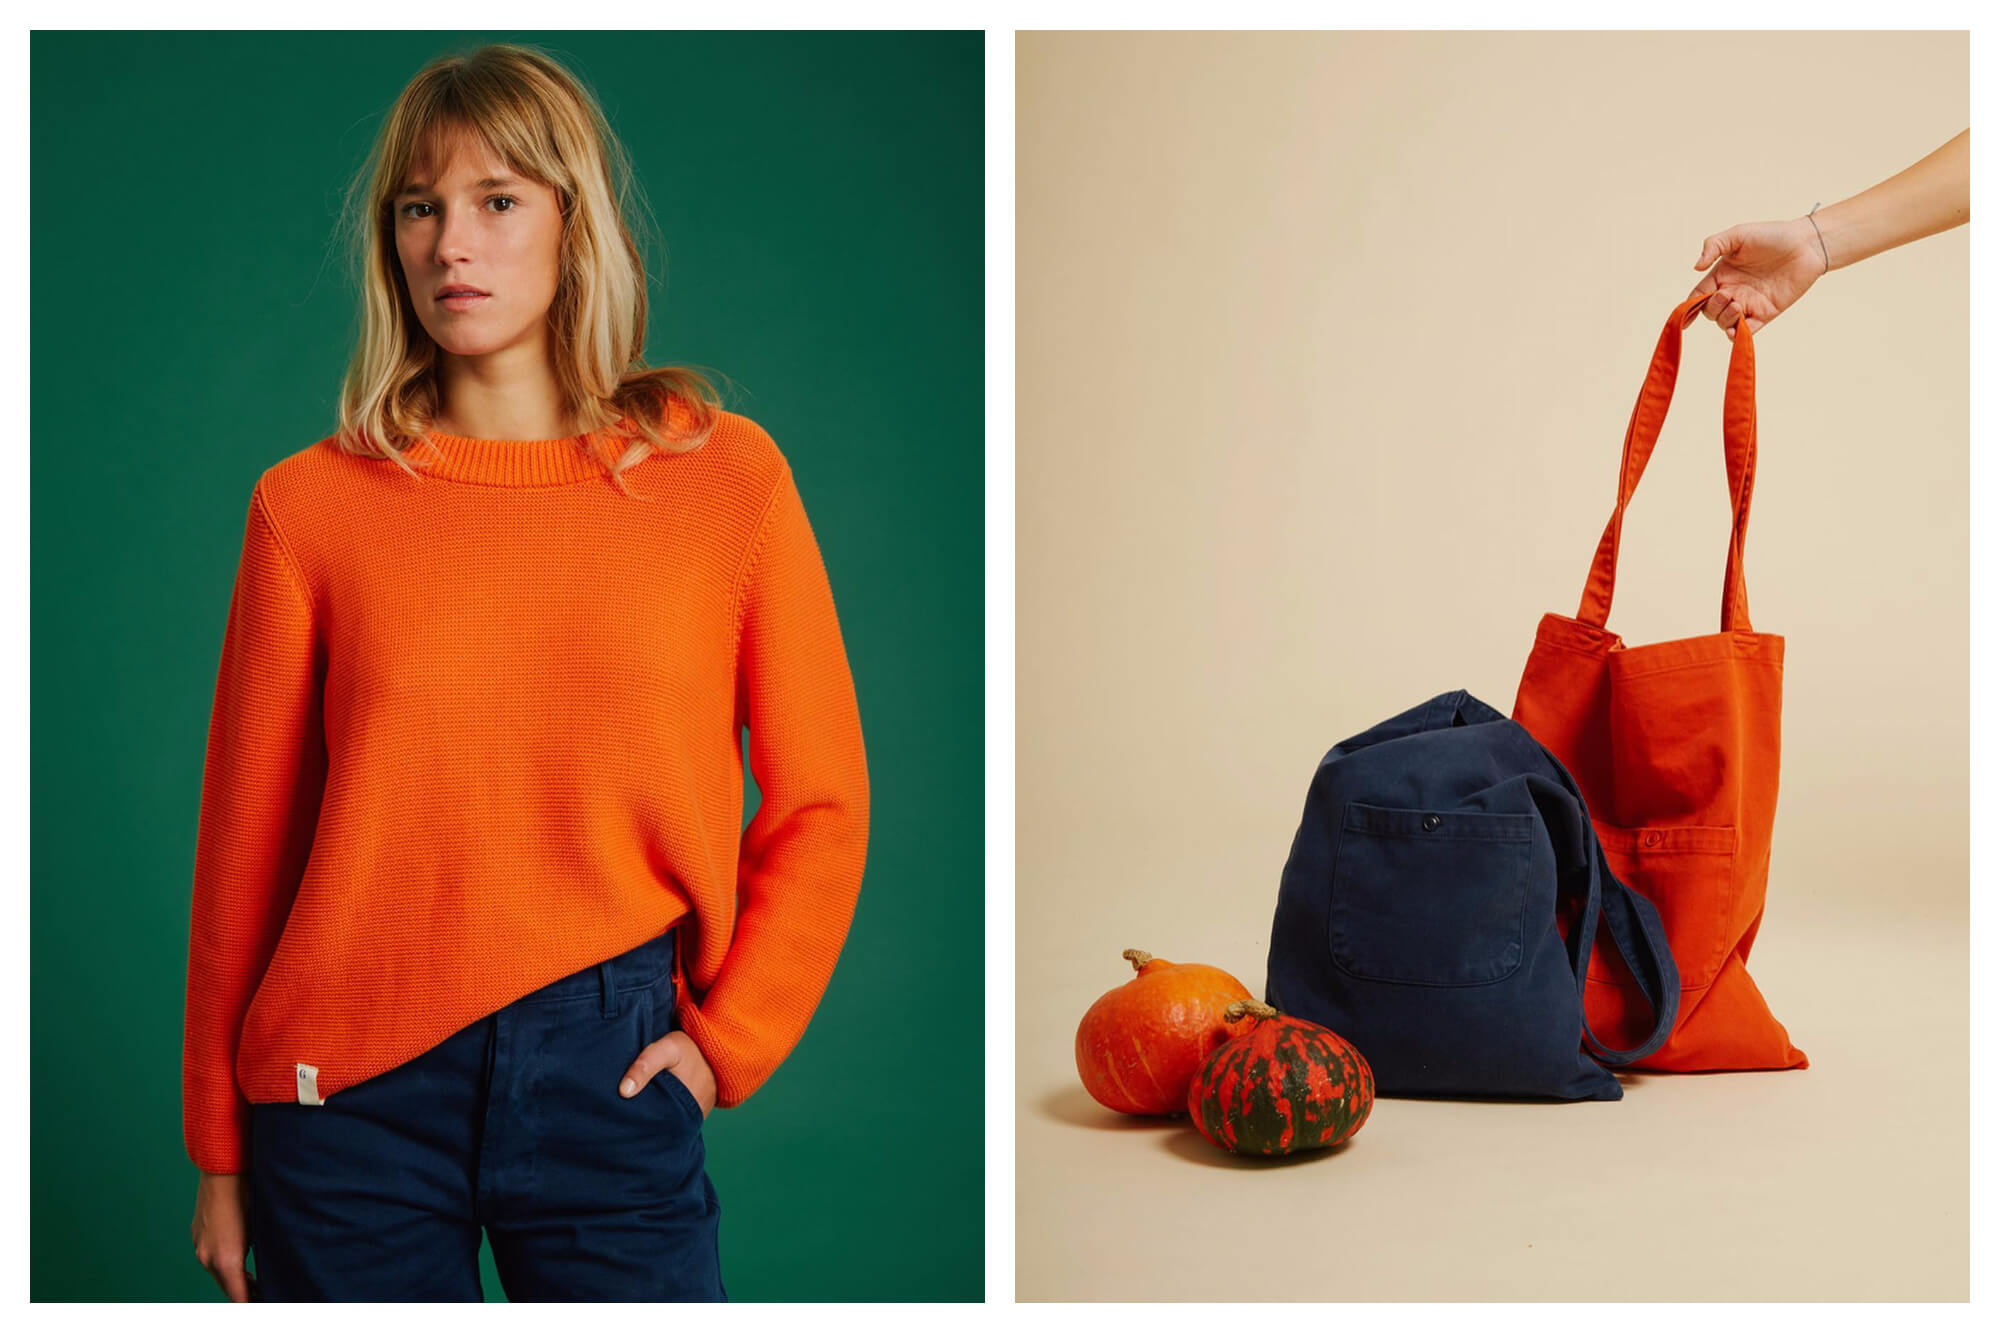 Left: a blonde woman wearing a bright orange knit jumper and navy blue pants. She has one hand in her pocket. Right: two bags, one bright orange and one navy blue, with a hand holding onto the strap of the orange one. There are also two orange pumpkins next to them.